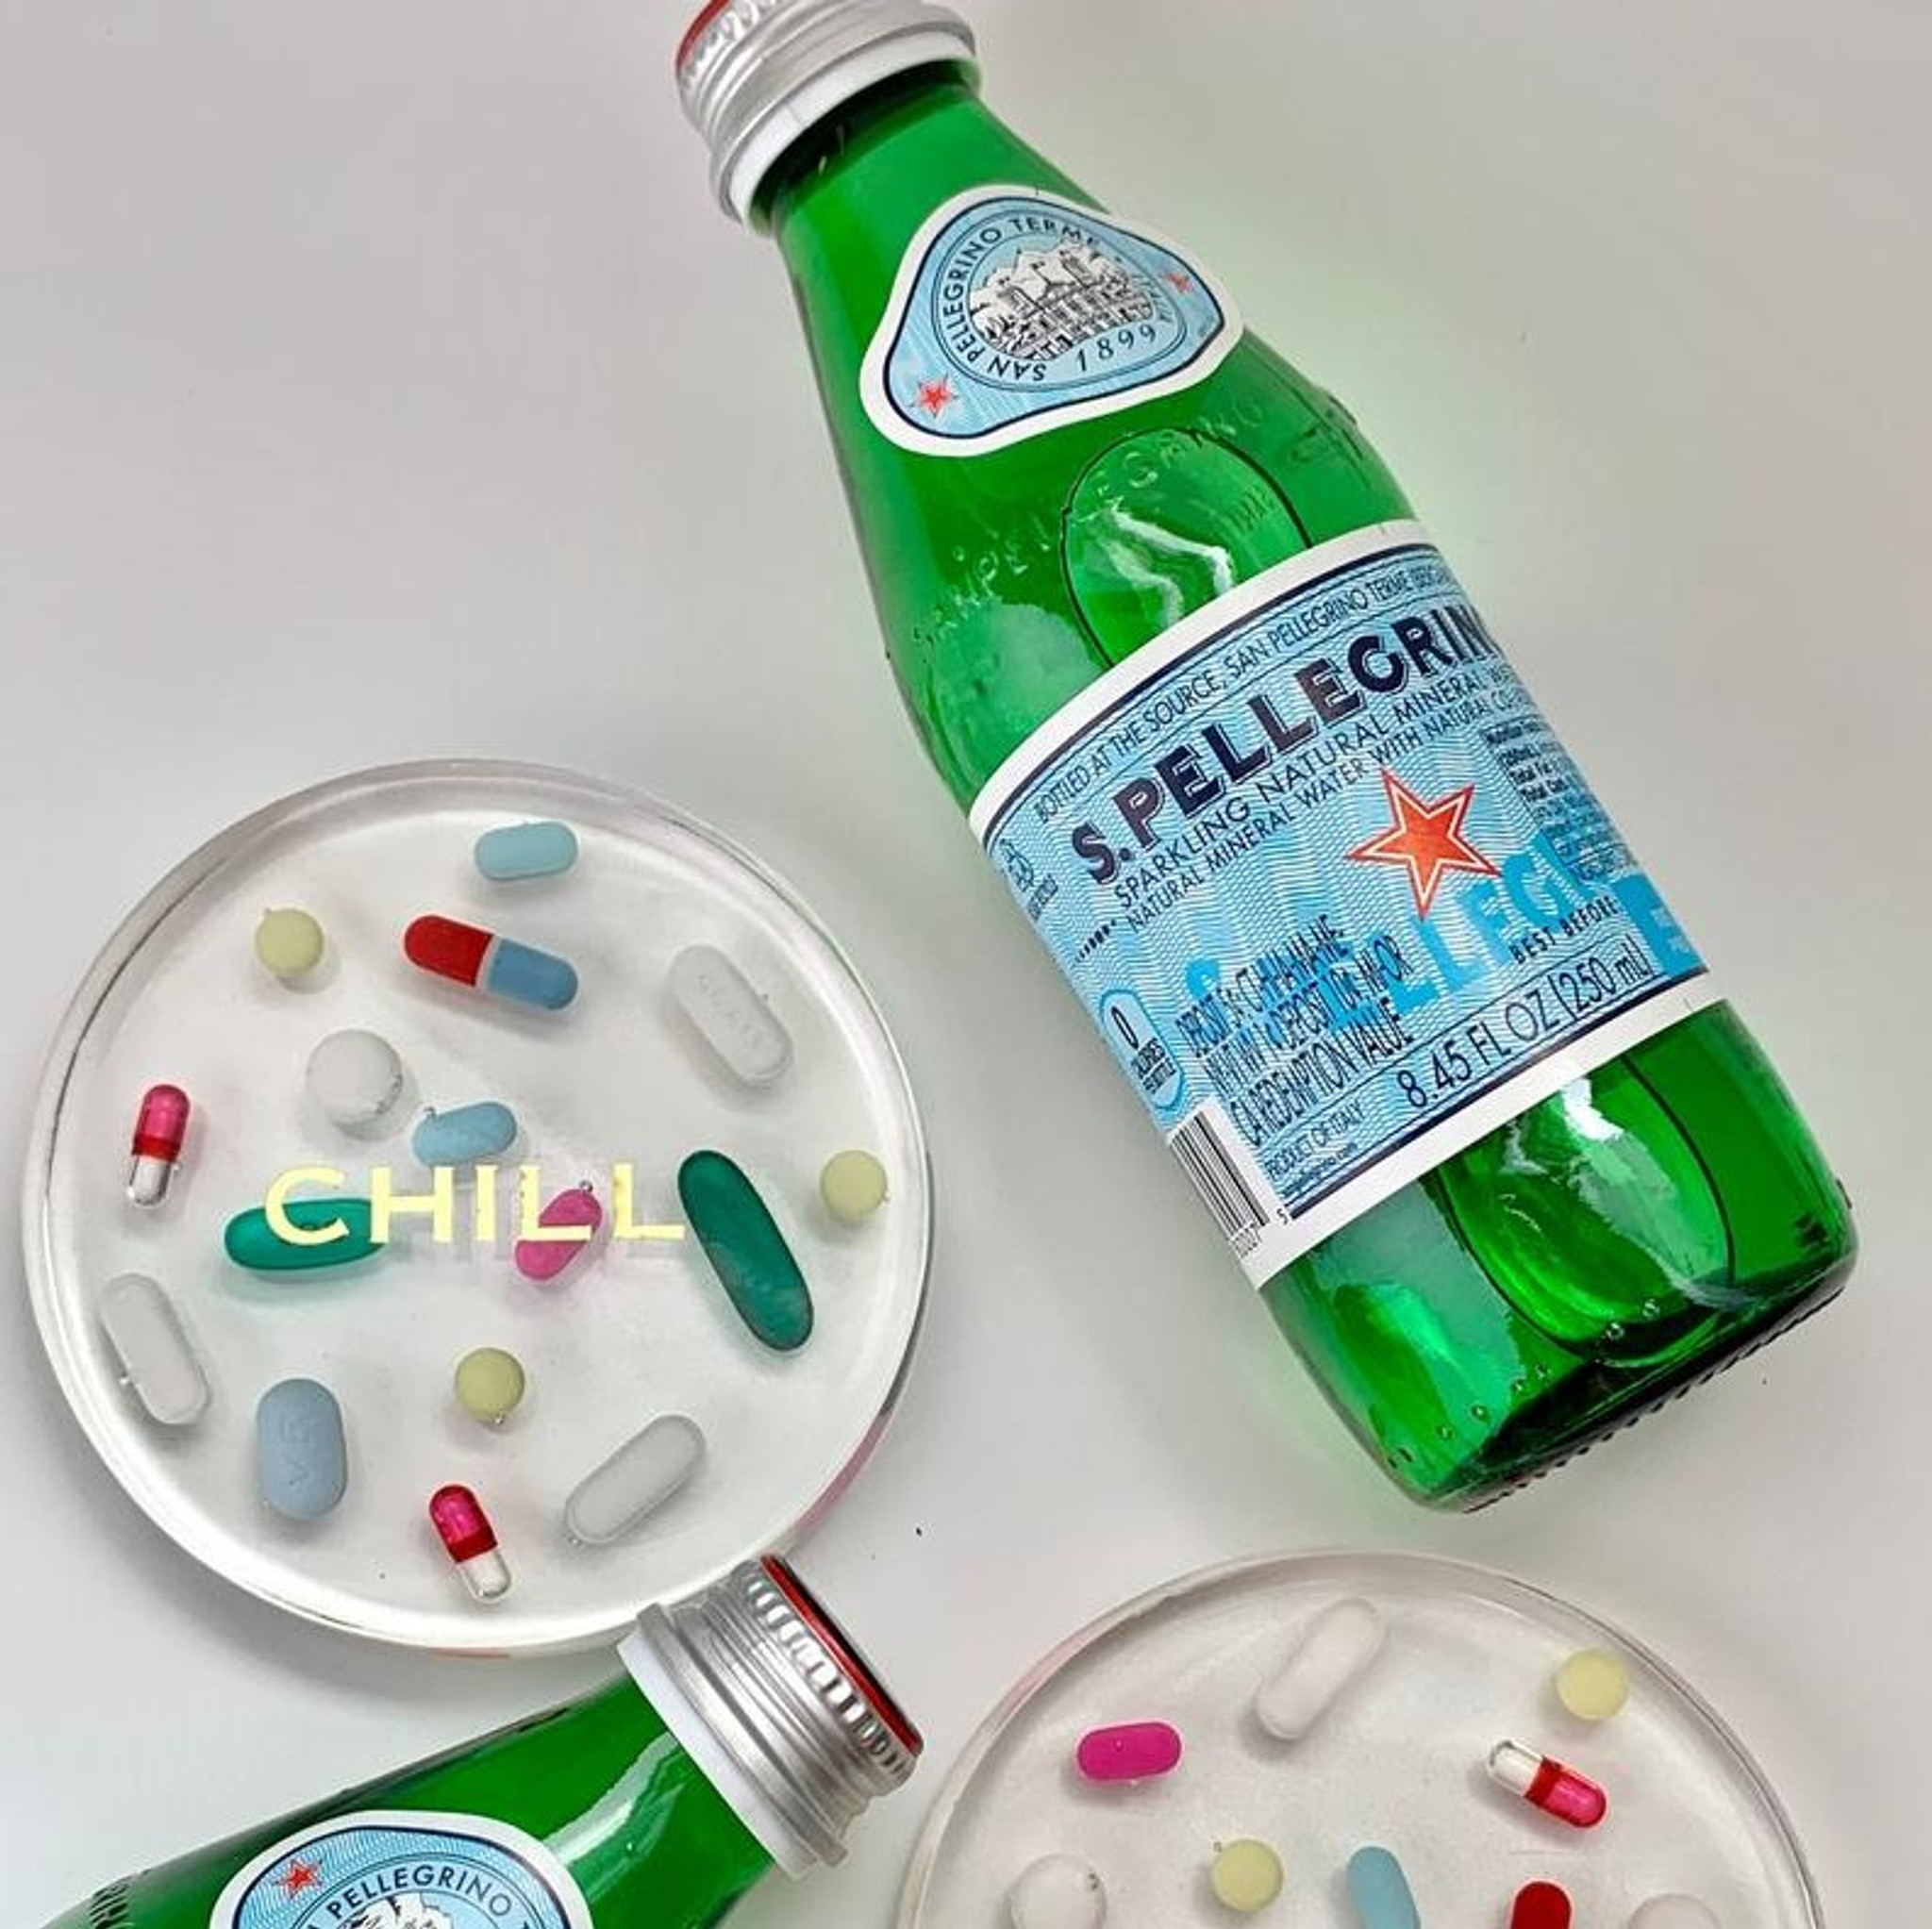 Chill Pill Whimsical Lucite Coaster,  Set of 4